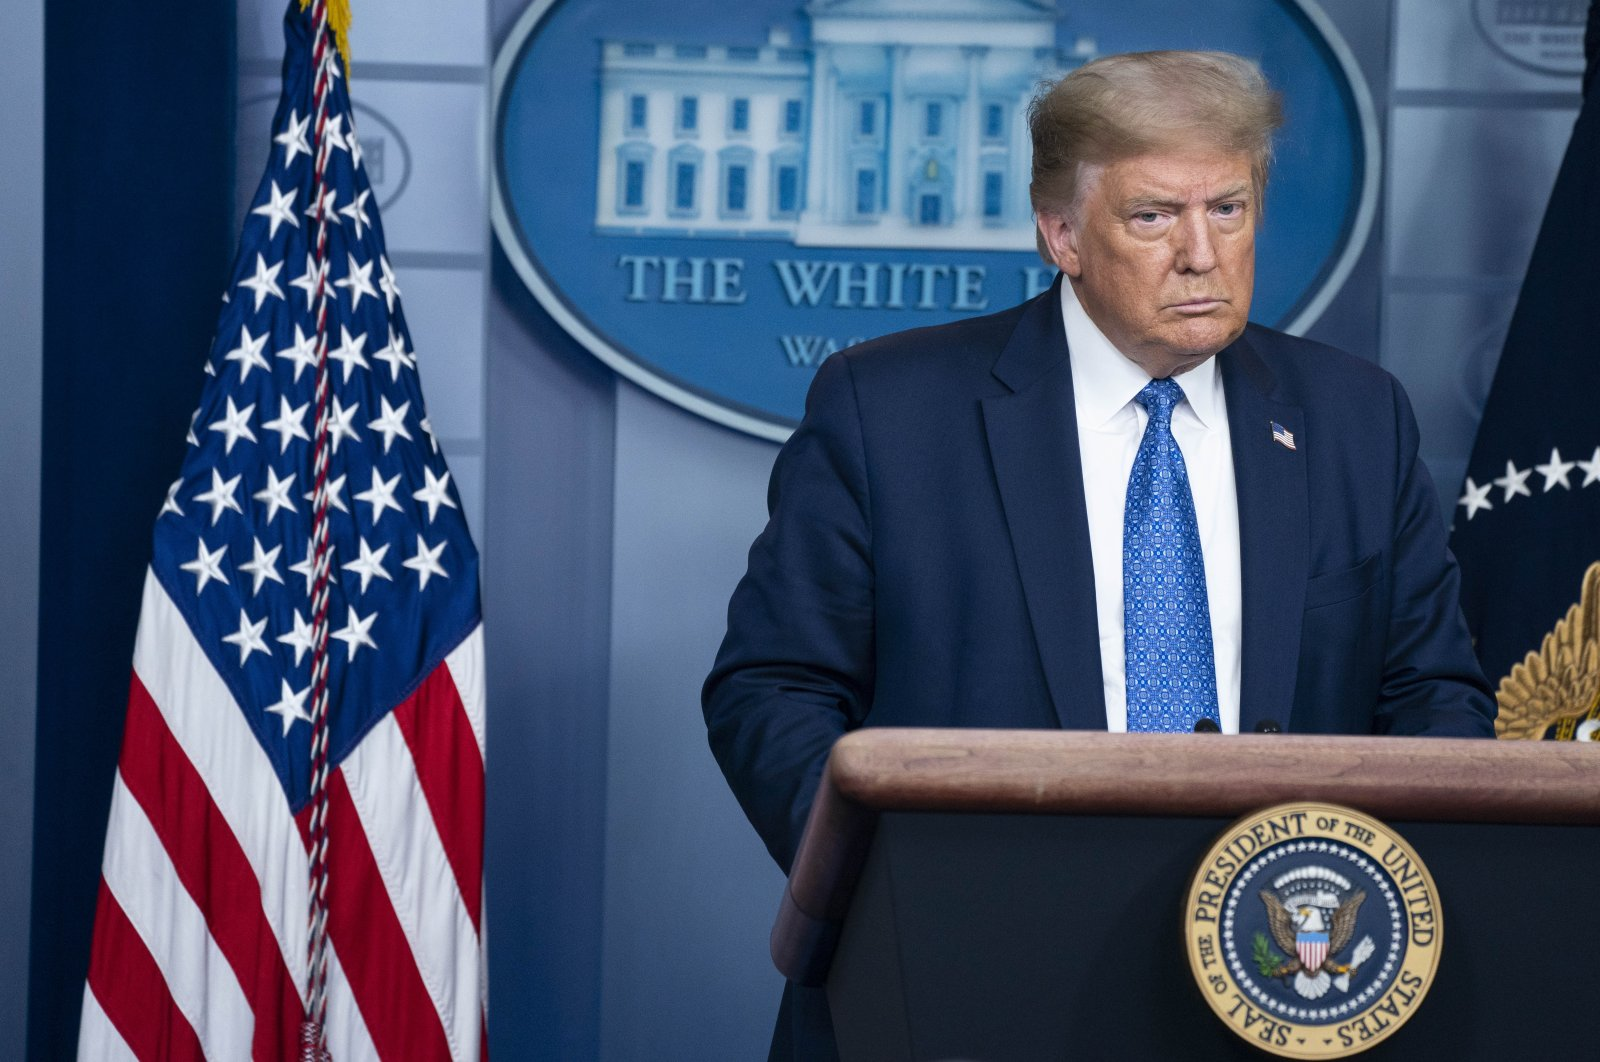 U.S. President Donald Trump speaks during a news conference at the White House, Washington, D.C., U.S., July 22, 2020. (EPA Photo)